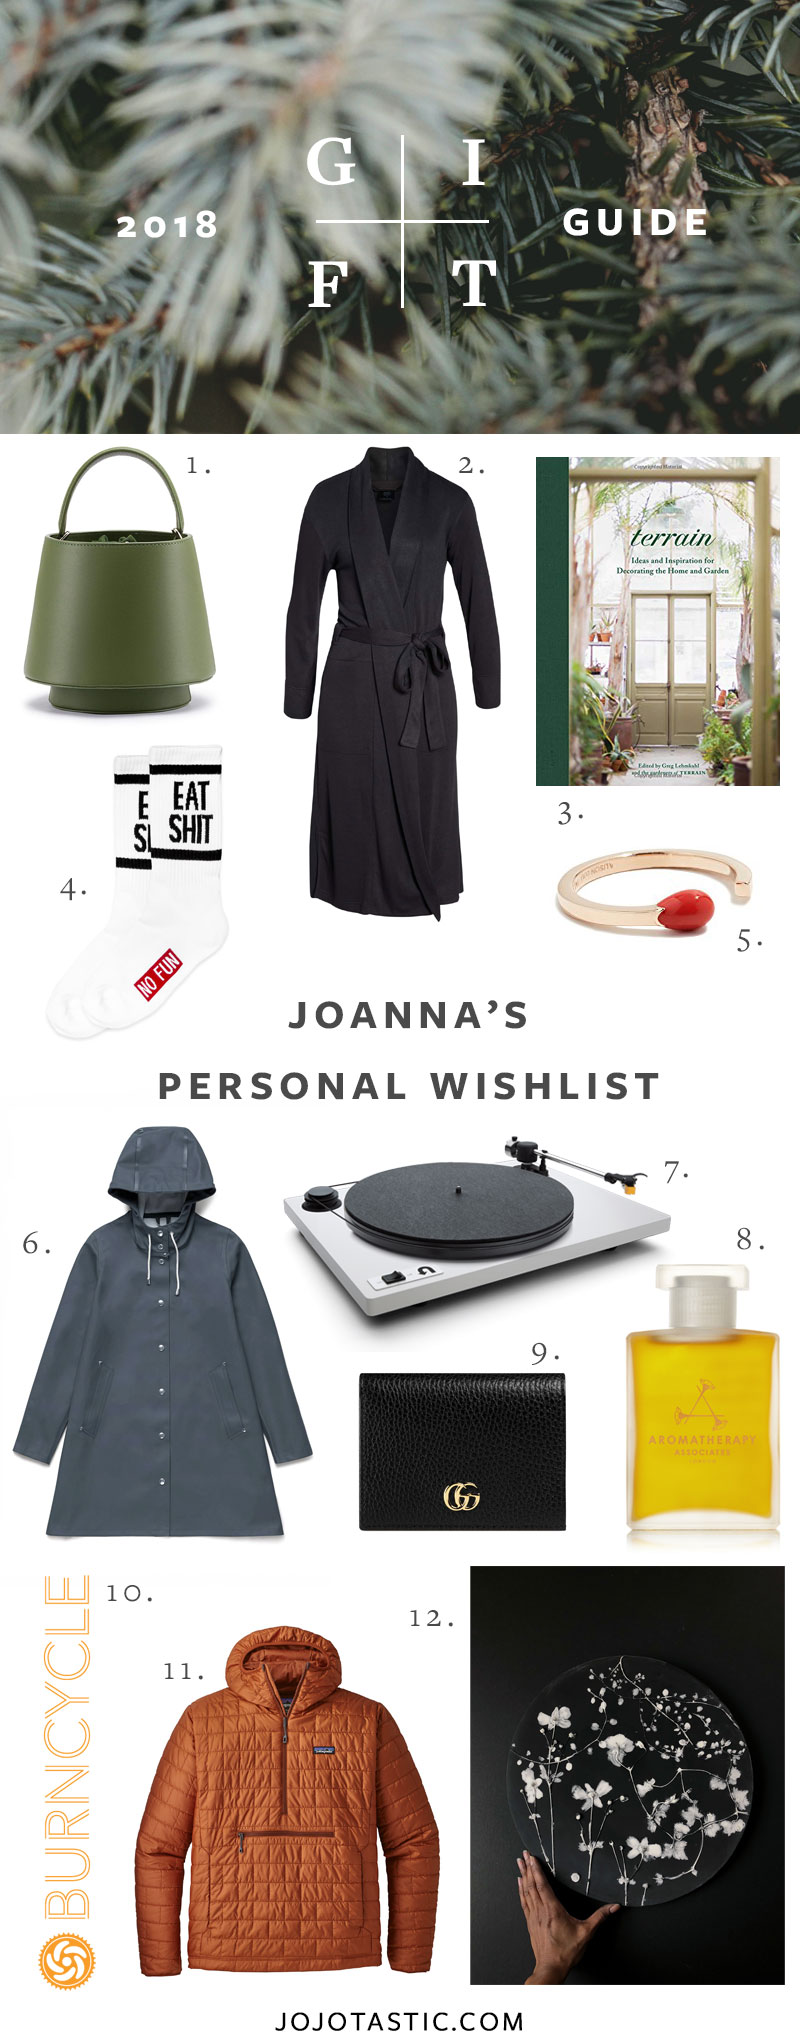 A Lifestyle Blogger's Personal Wishlist Gift Ideas, Gift Guide for Christmas & Holidays 2018 via jojotastic.com #giftguide #giftidea #giftgiving #gifts #presents #christmaspresents #christmasgiftideas #christmasgift